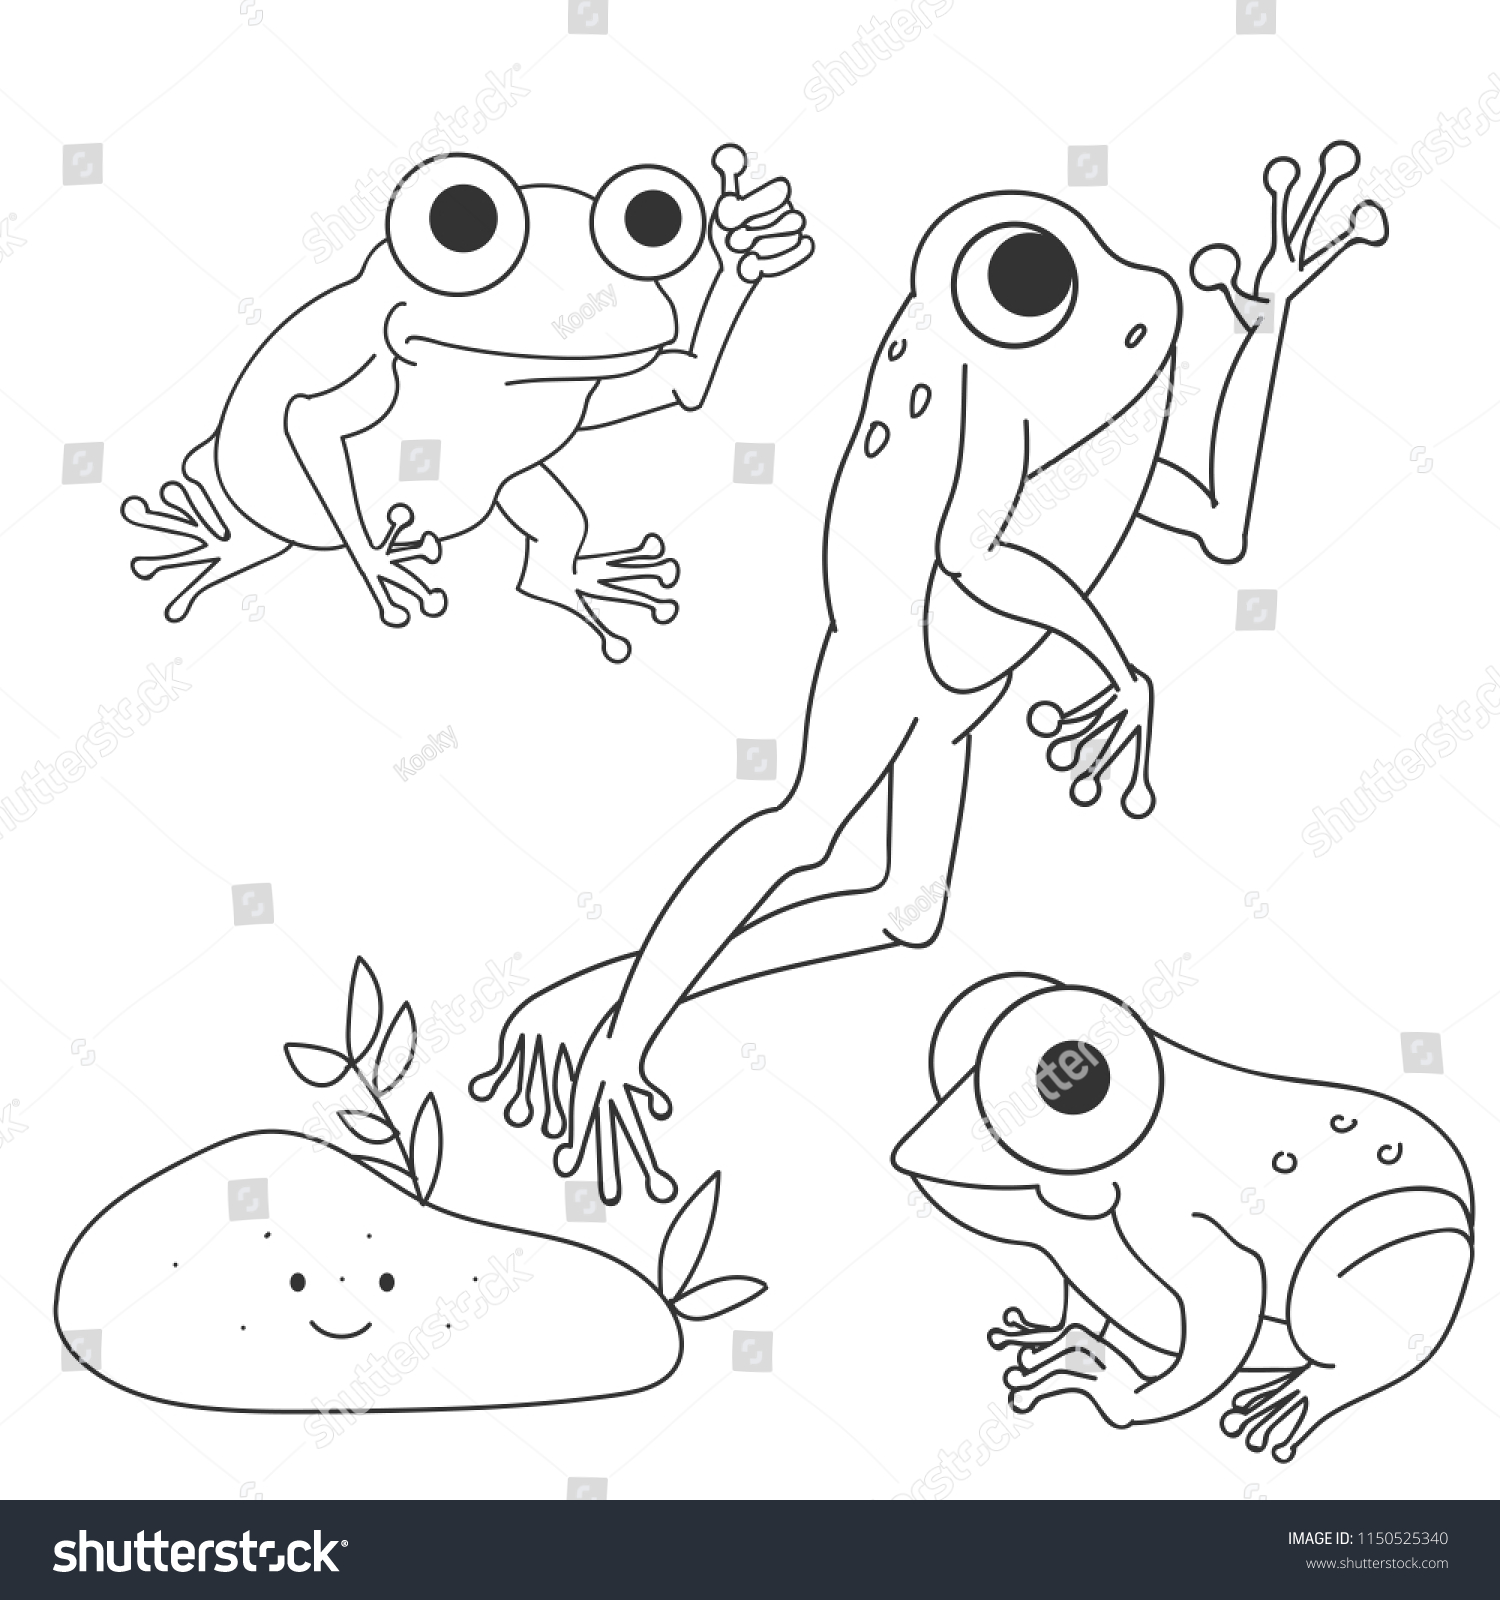 Frogs Coloring Page Stock Vector (Royalty Free) 1150525340 ...